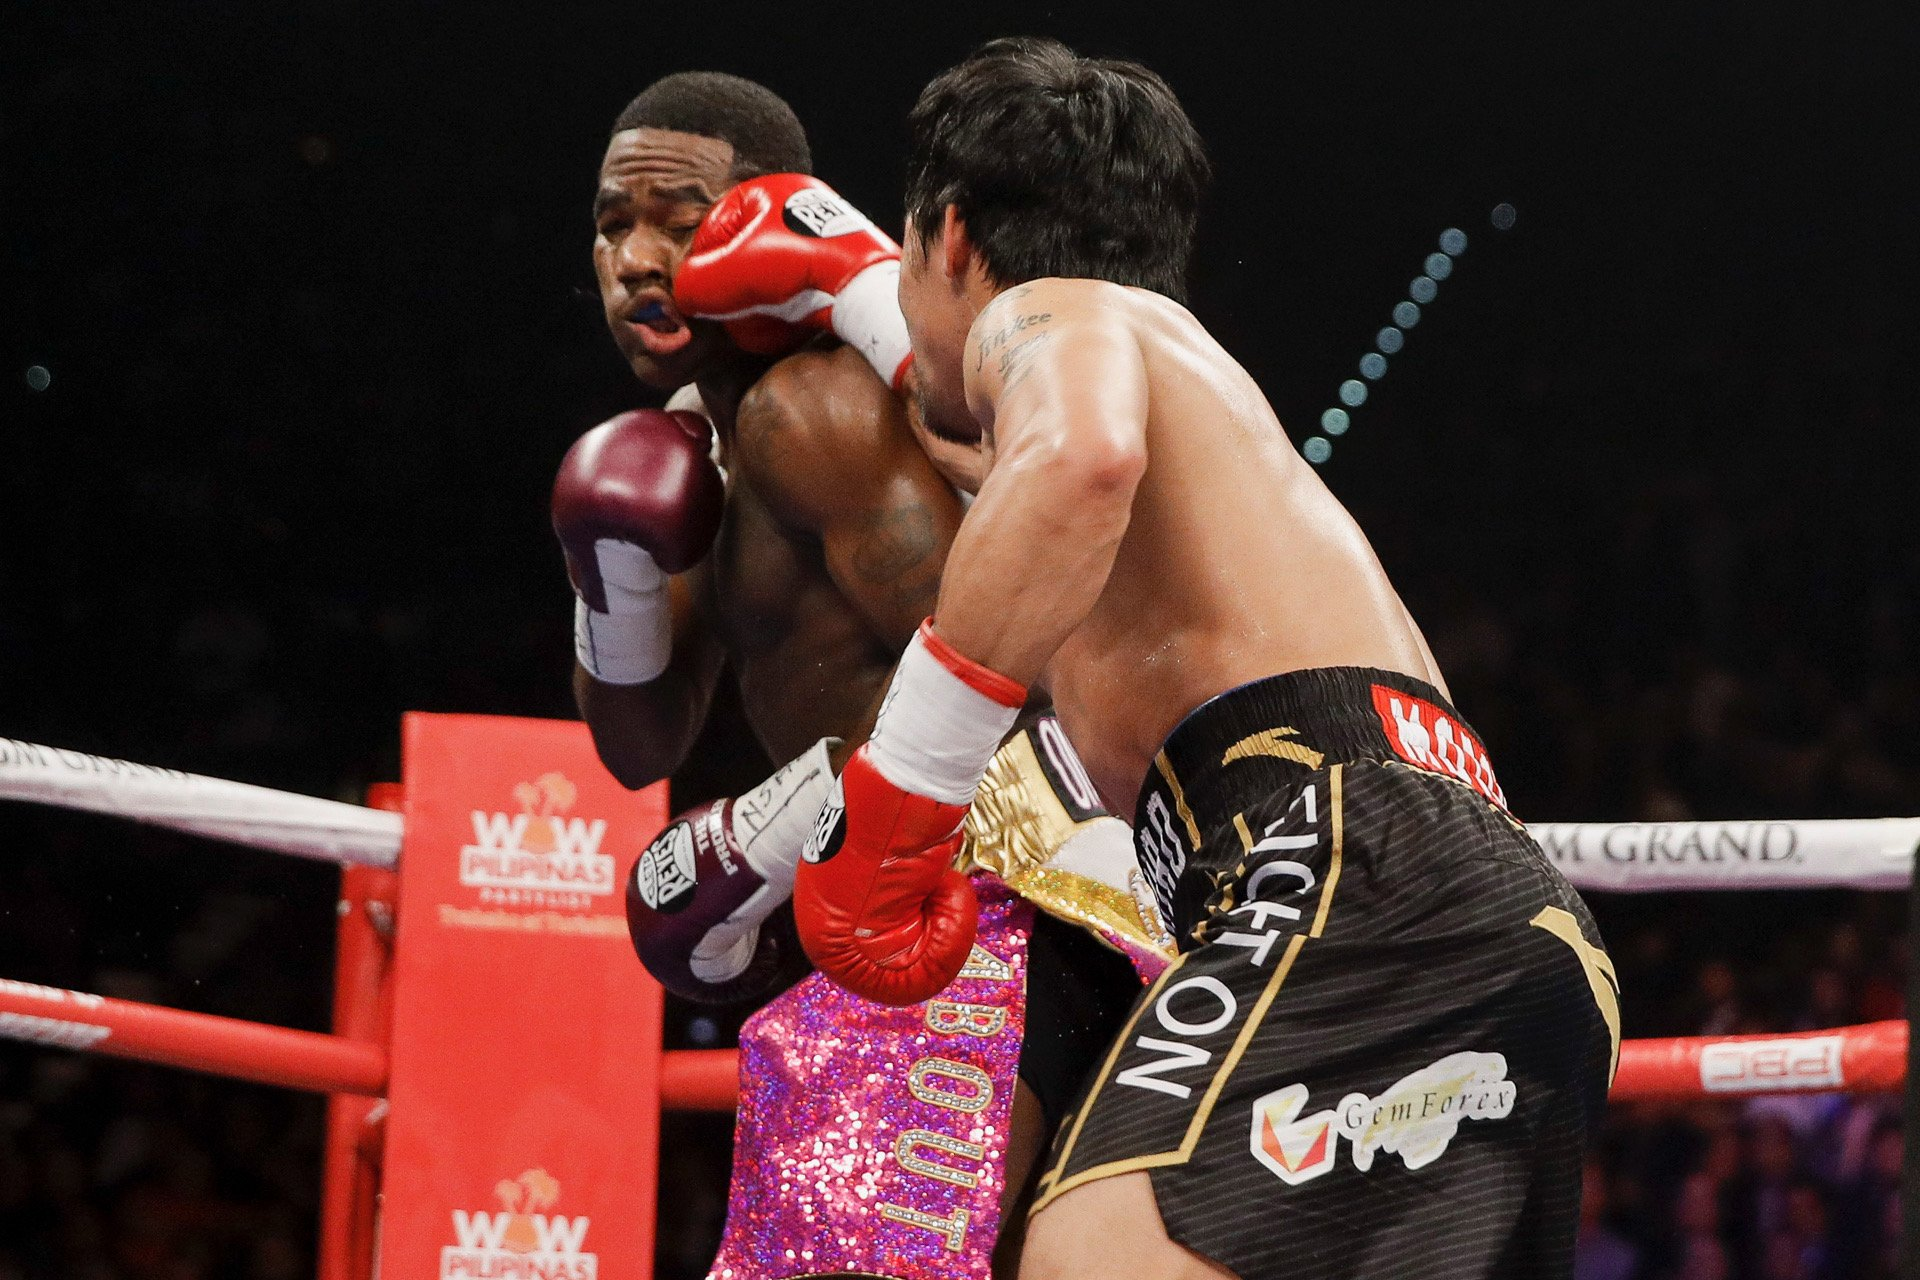 pac rd 5 - Showtime PPV Round by Round Results: Pacquiao Dominates Broner Over 12 Rounds